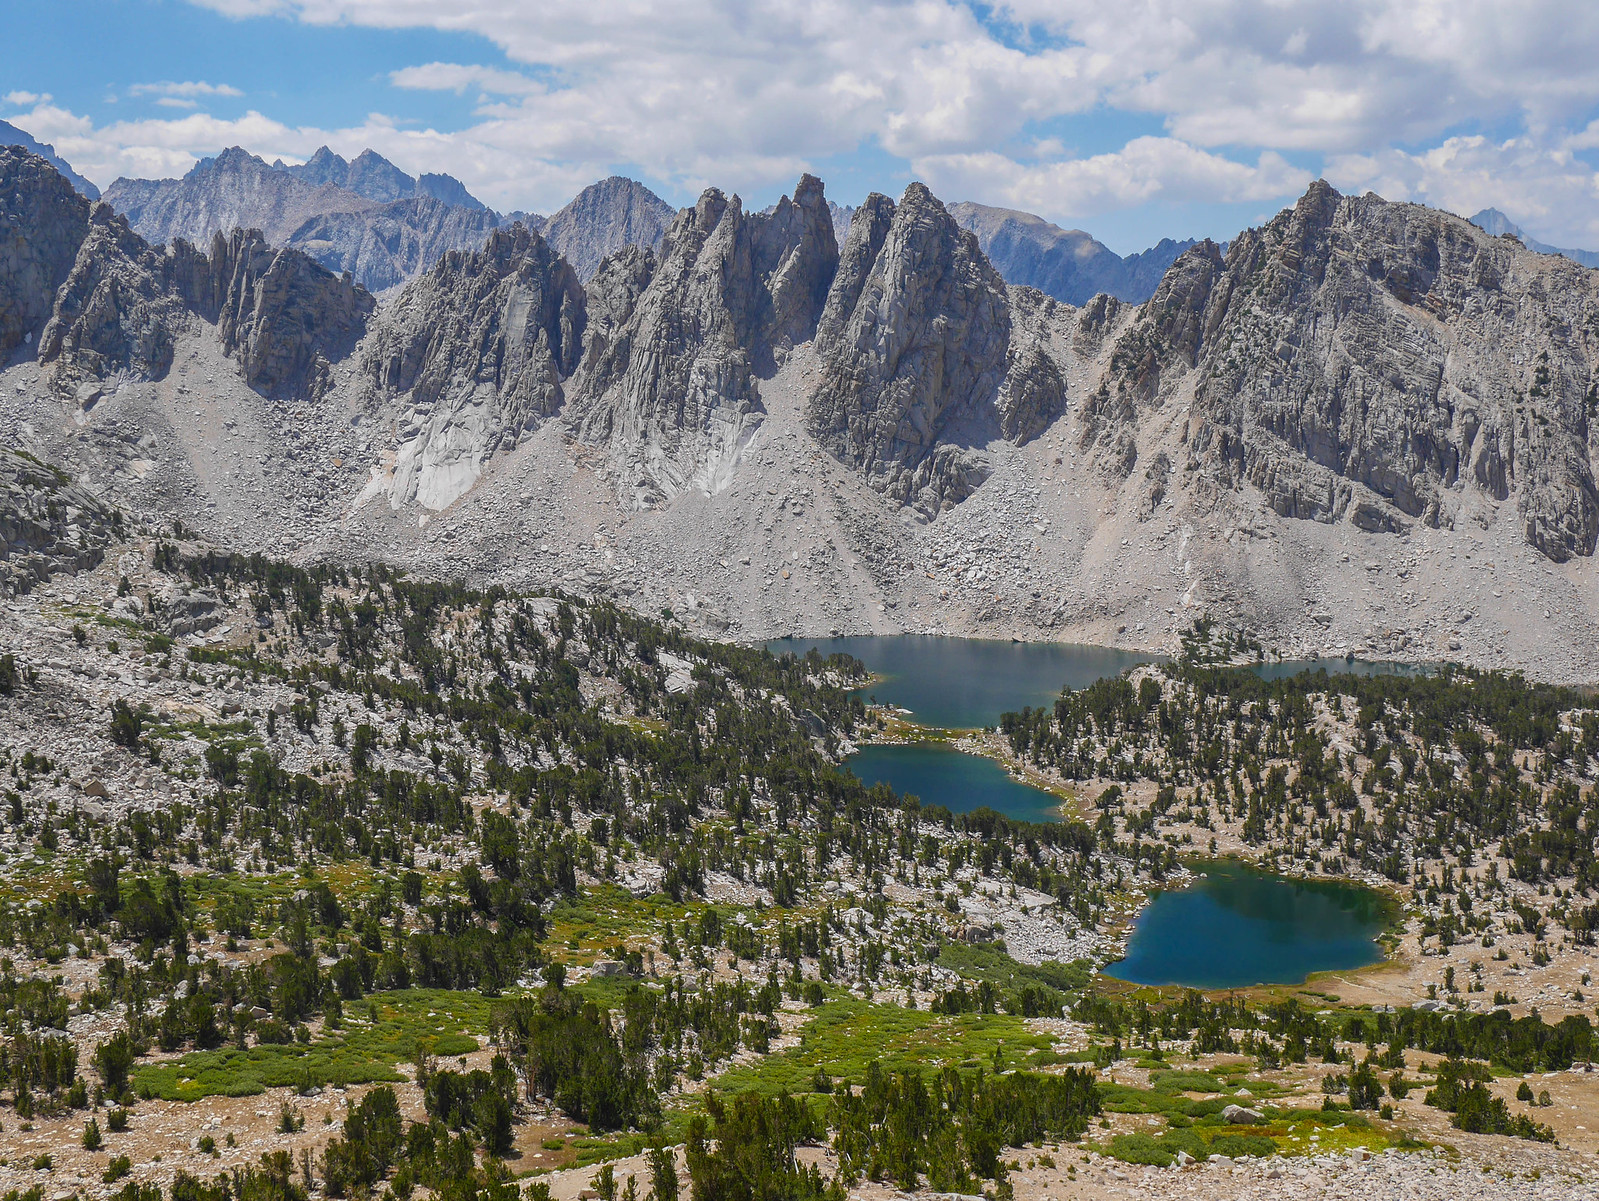 Kearsarge Pinnacles and Lakes